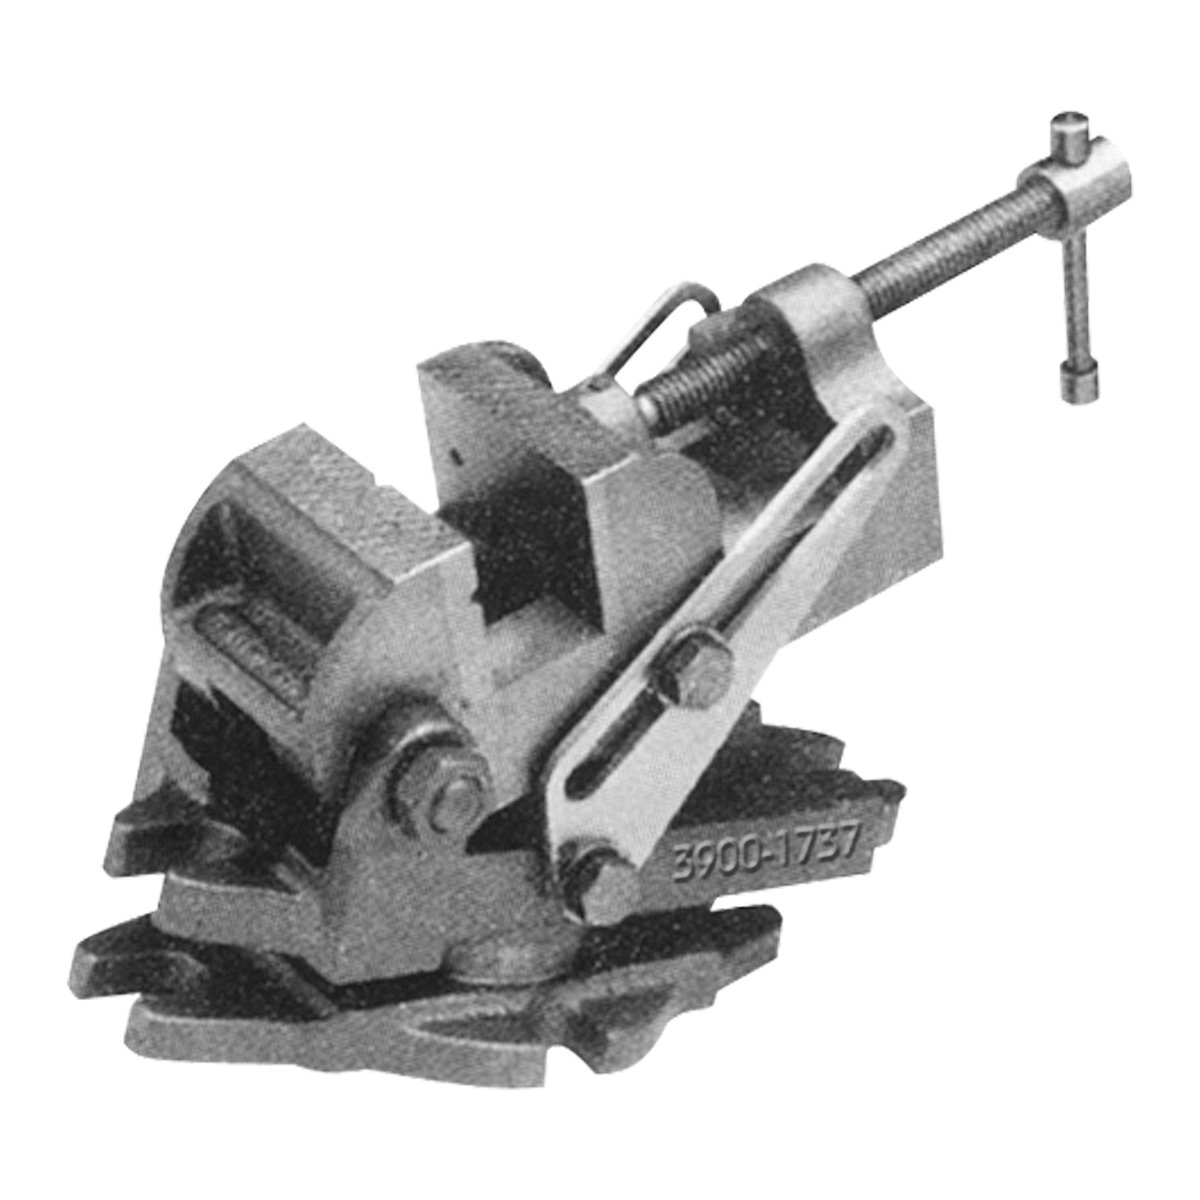 HHIP 3900-1737 Angle Drill Press Vise with Swivel Base, 4-1/2''